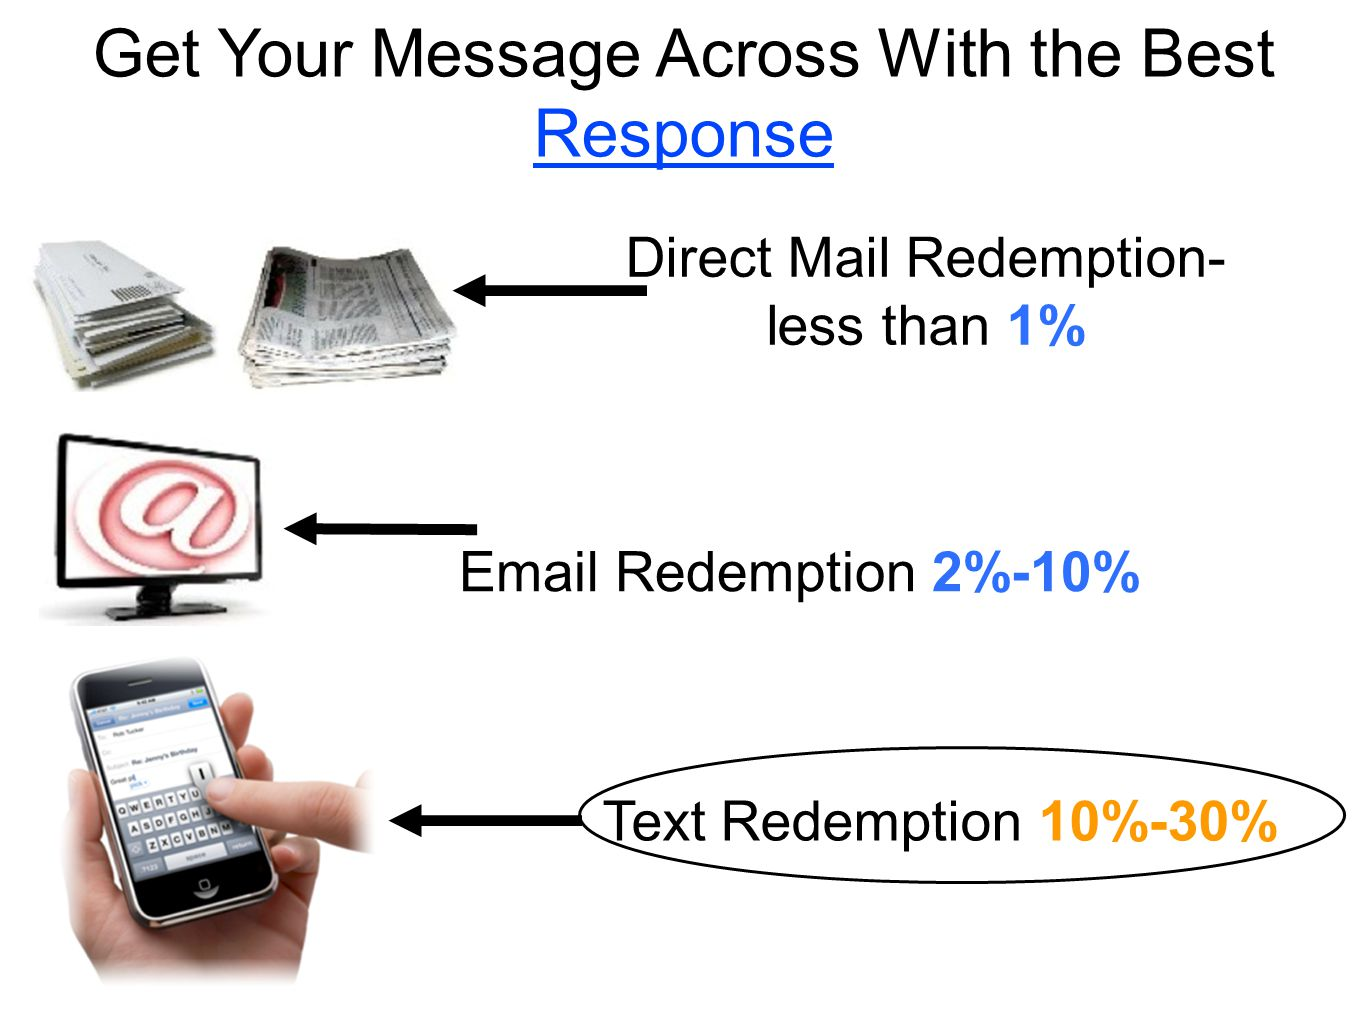 Get Your Message Across With the Best Response Direct Mail Redemption- less than 1% Email Redemption 2%-10% Text Redemption 10%-30%